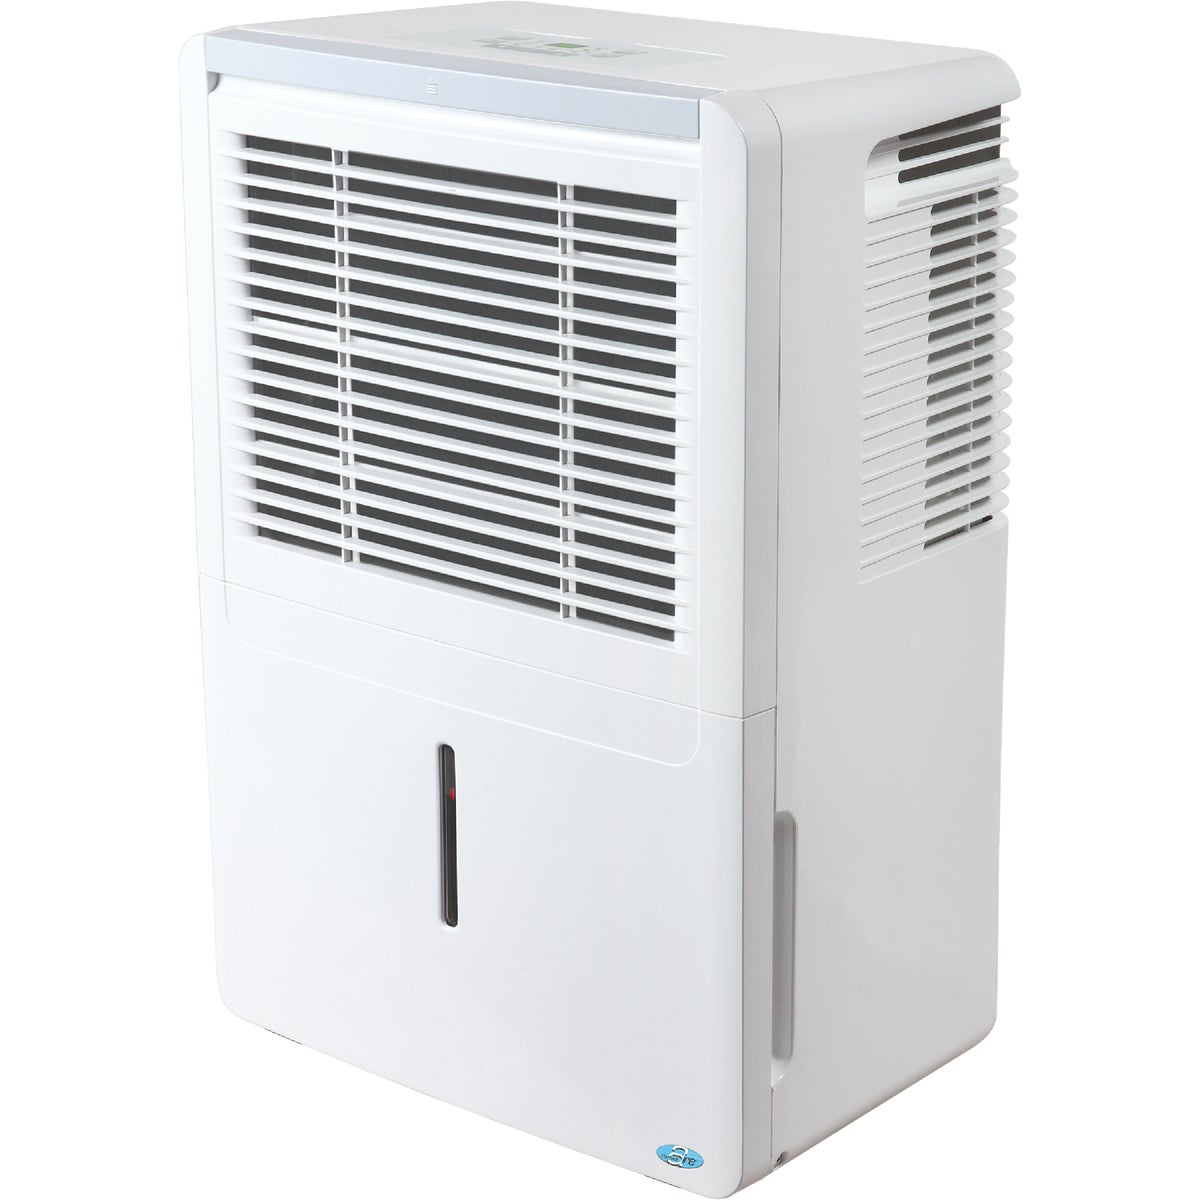 50PT ELECT DEHUMIDIFIER - PA50 by Perfect Aire Import